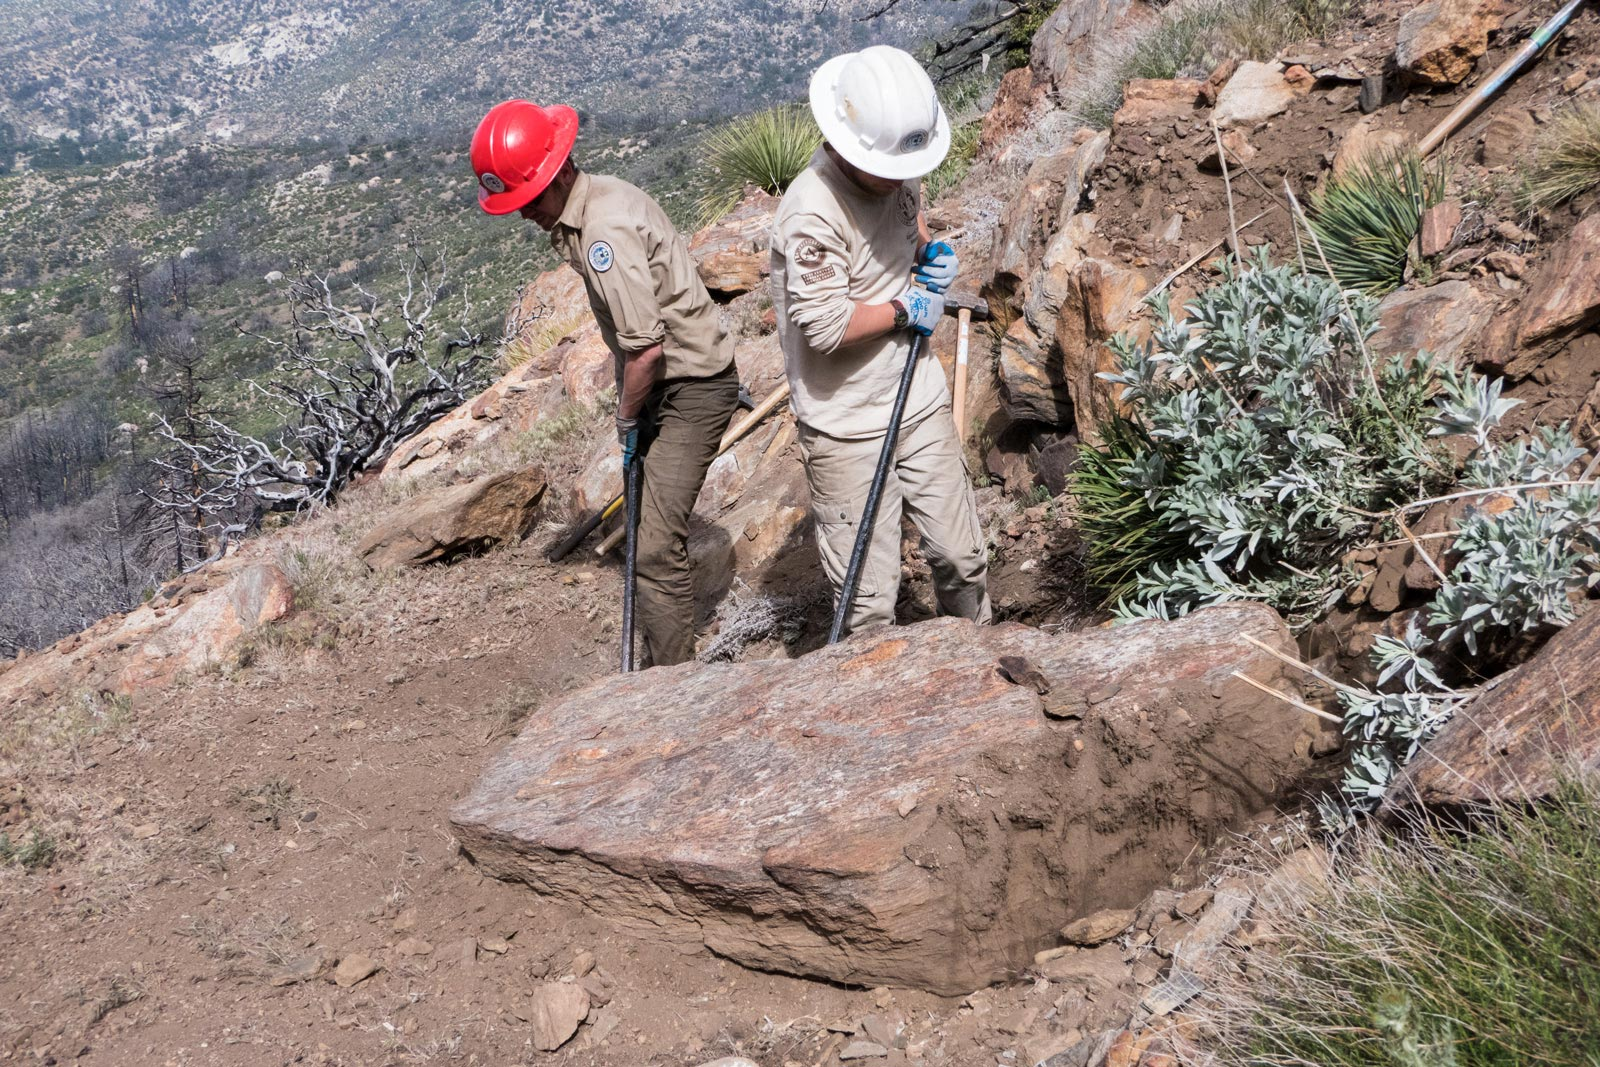 ACE crew members move a big boulder in the Mountain Fire burn area.